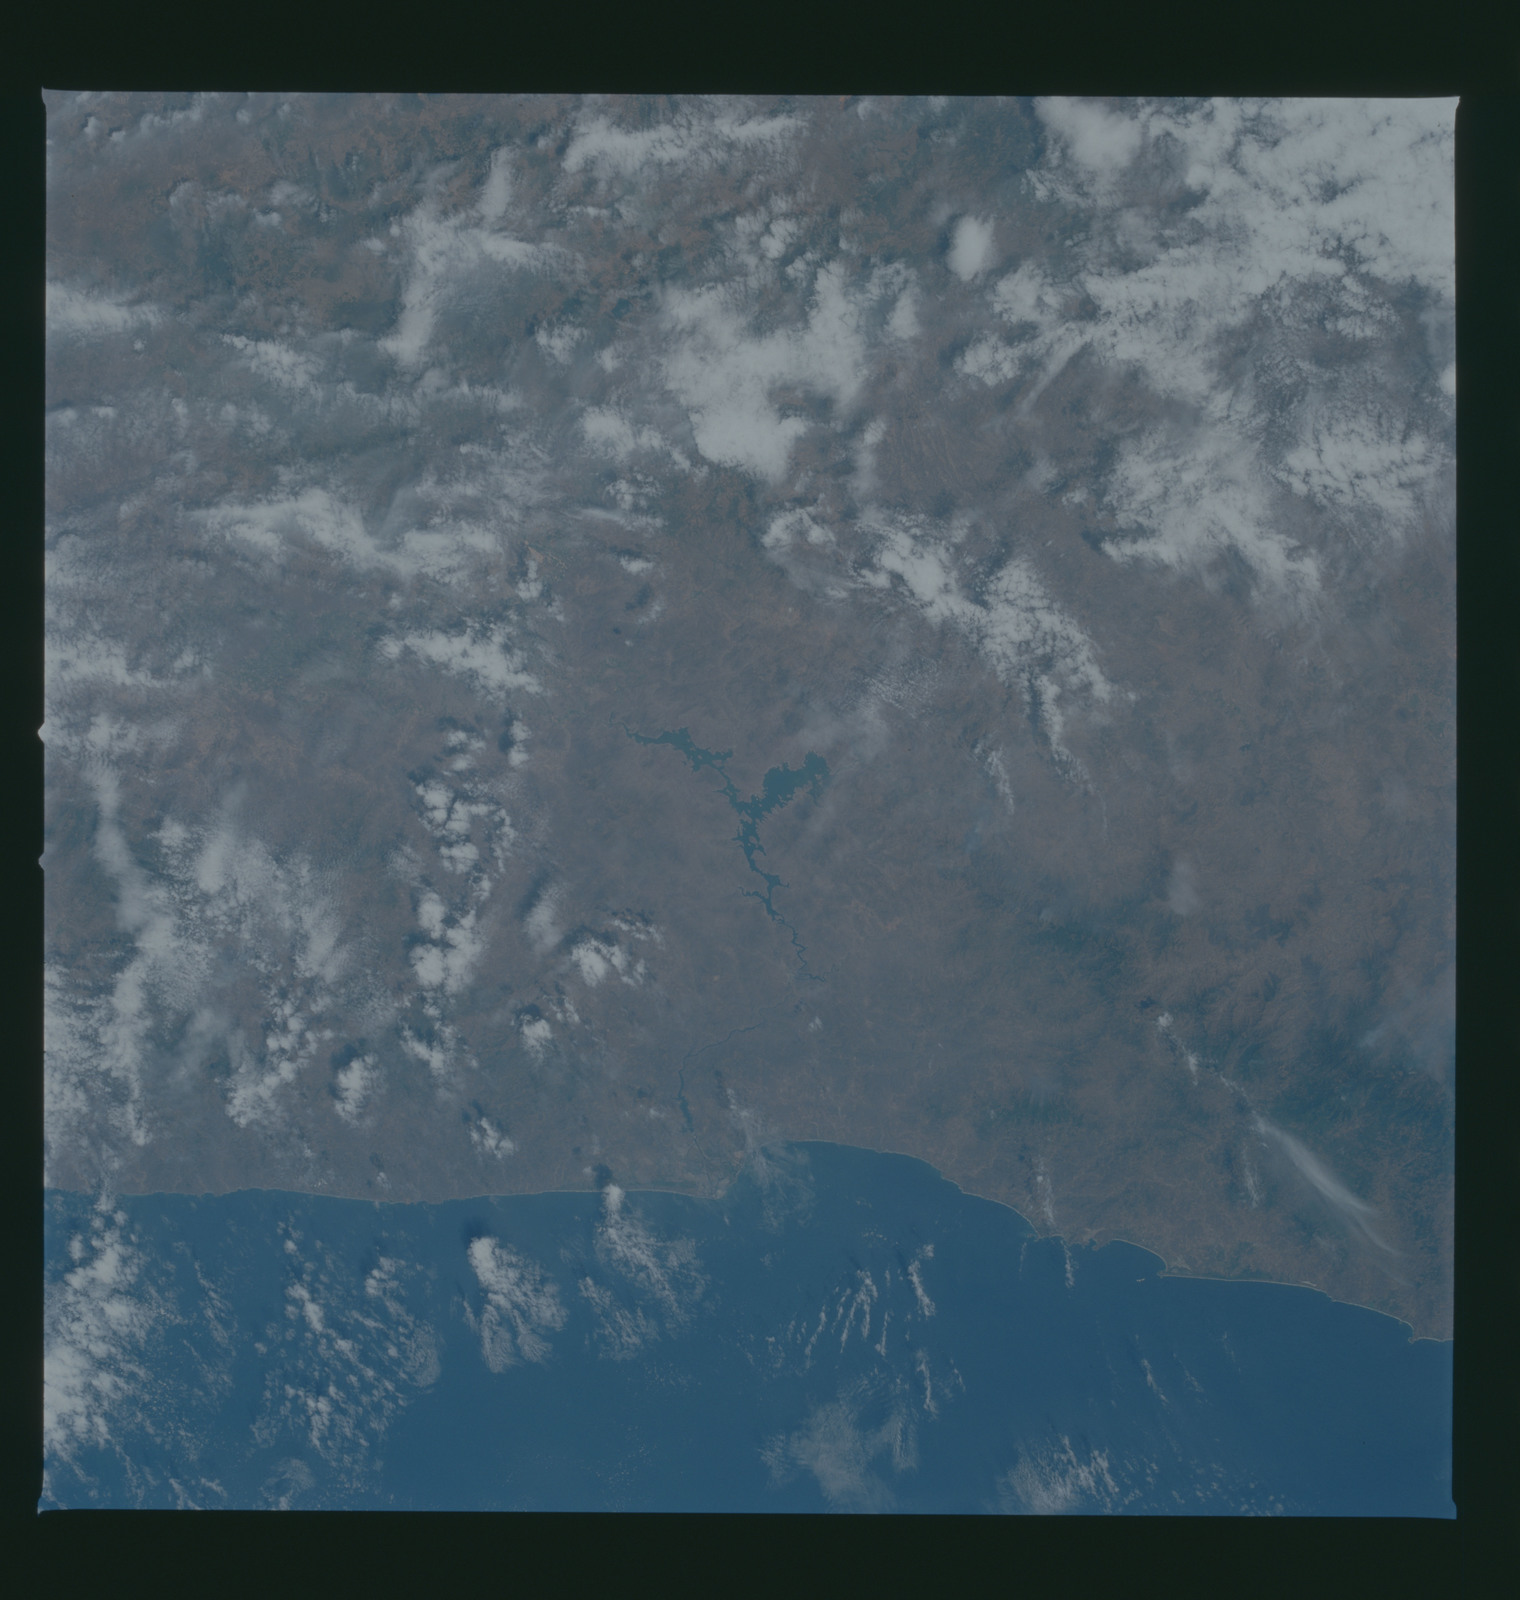 S37-96-050 - STS-037 - Earth observations taken from OV-104 during STS-37 mission